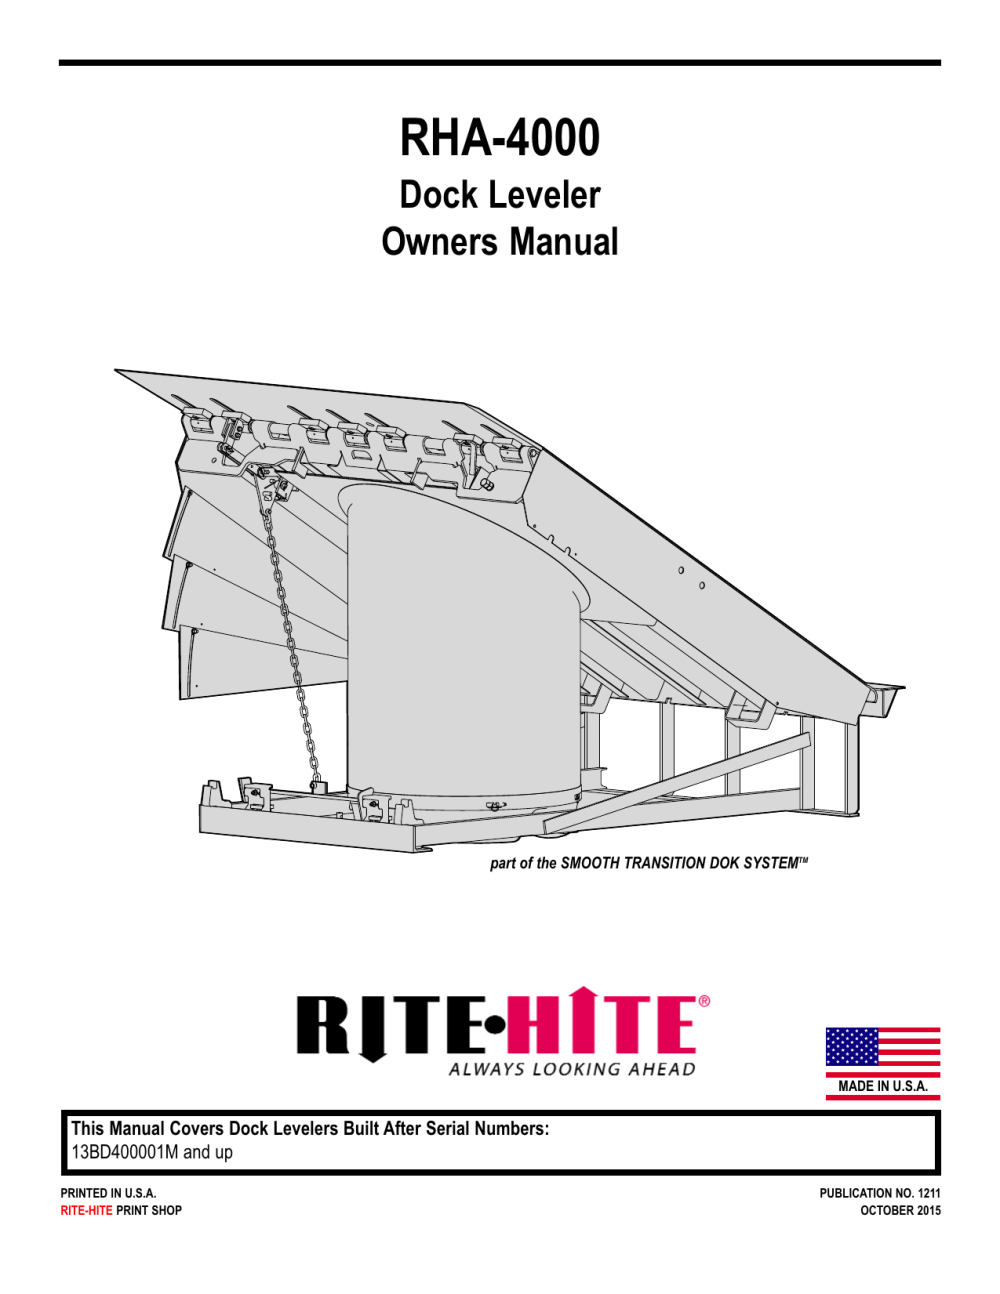 medium resolution of rha 4000 dock leveler owners manual part of the smooth transition dok systemtm made in u s a this manual covers dock levelers built after serial numbers